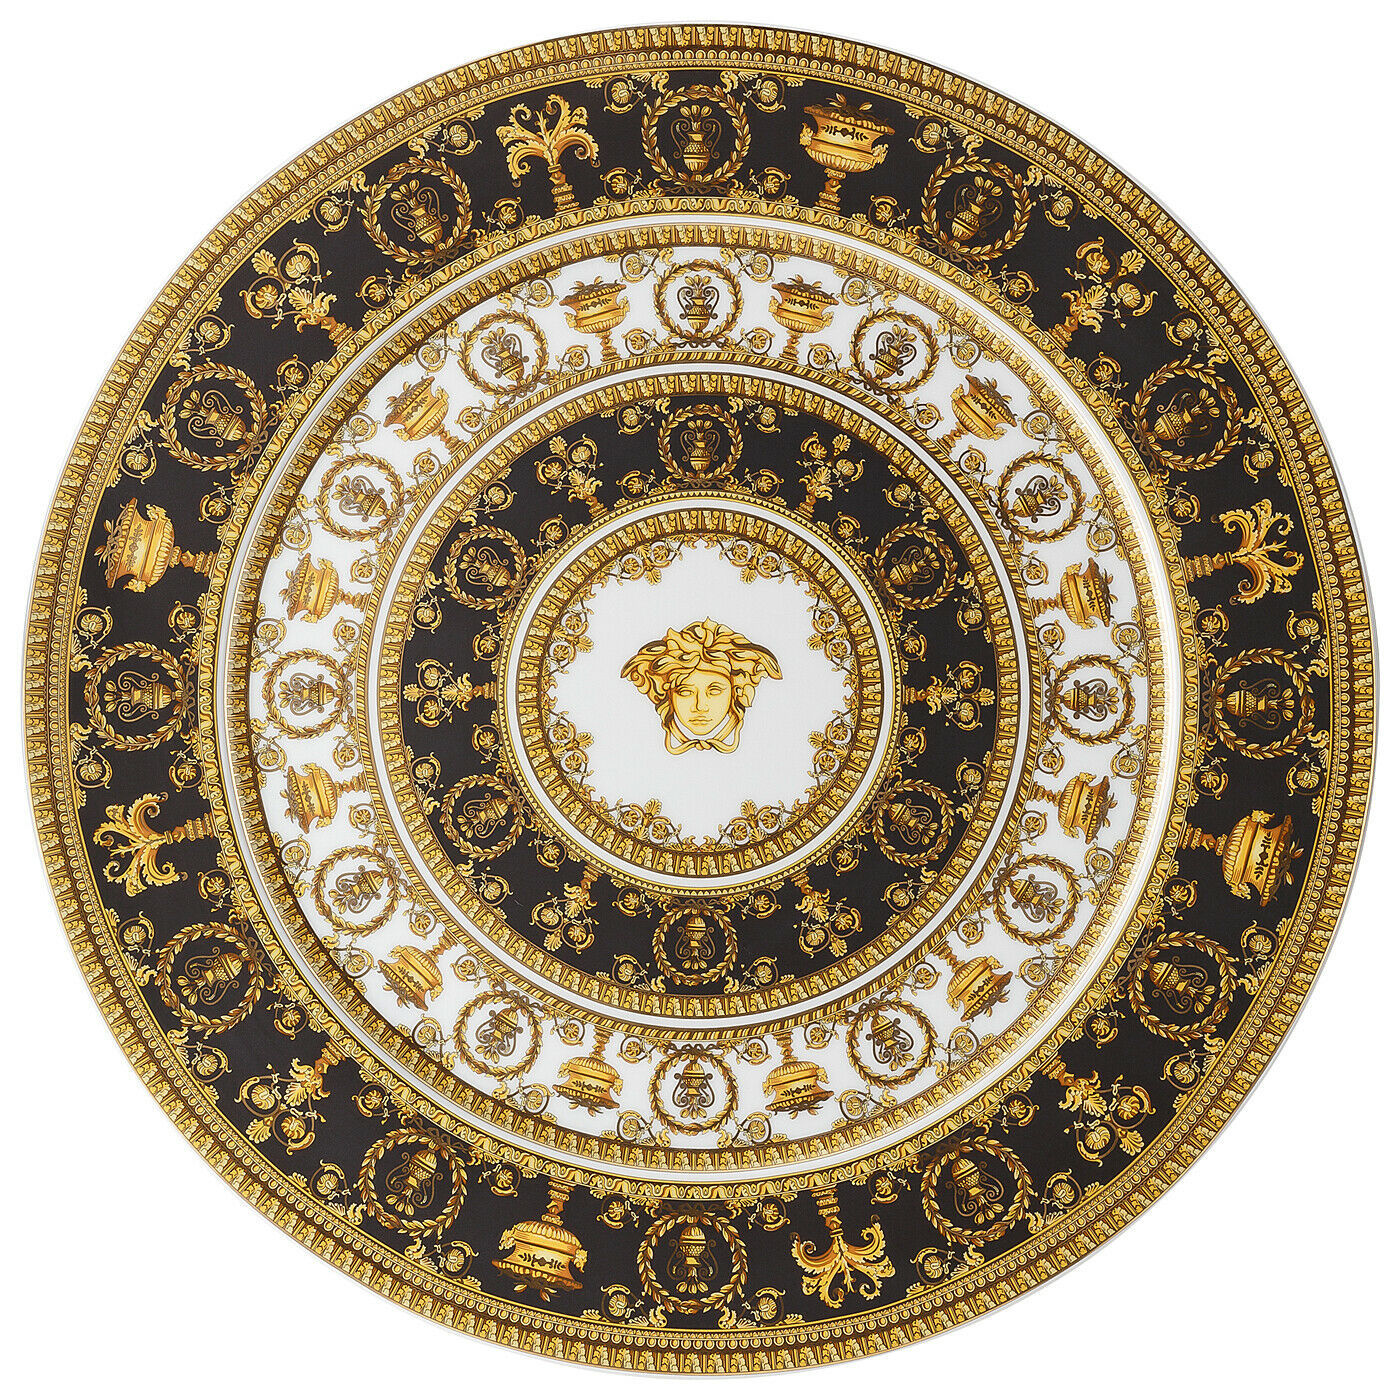 Primary image for Versace I Love Baroque Service Plate 33 cm Porcelain Made in Italy